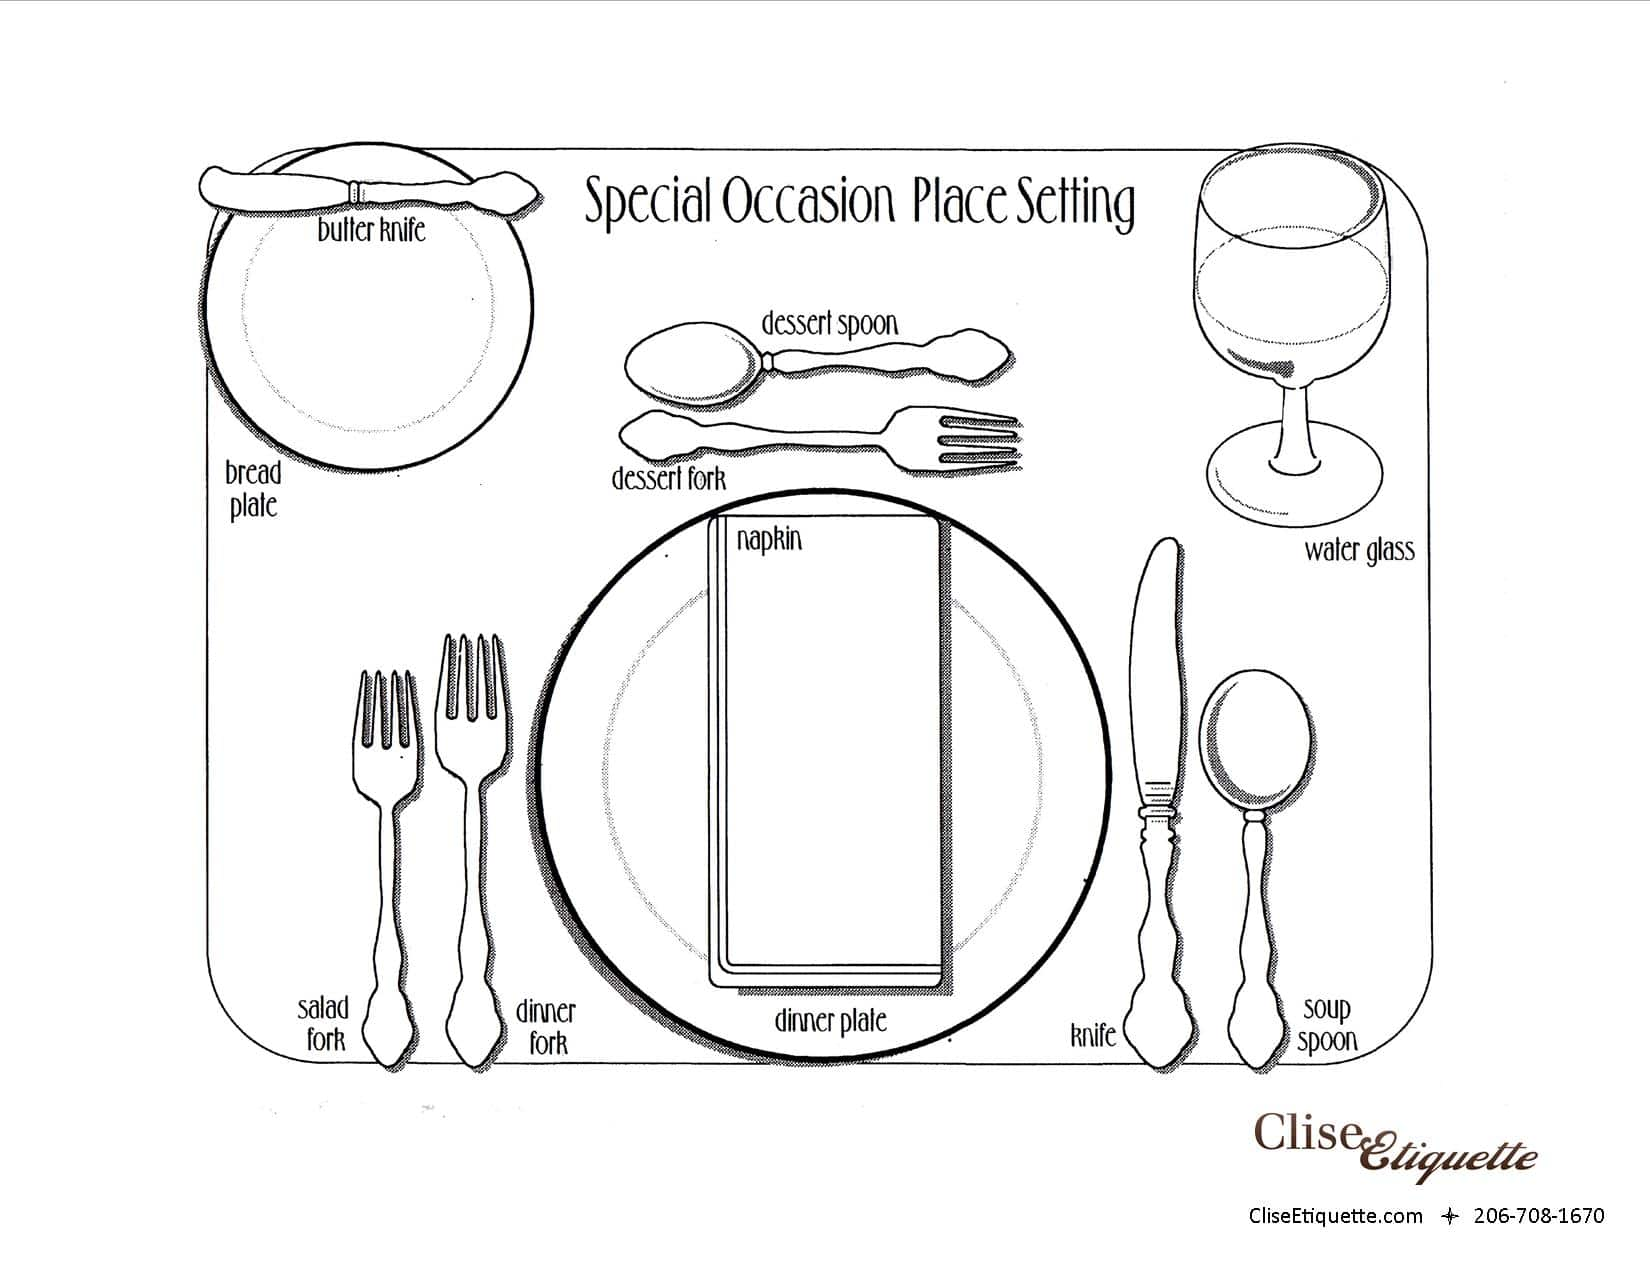 Special occasion place setting with AC logo